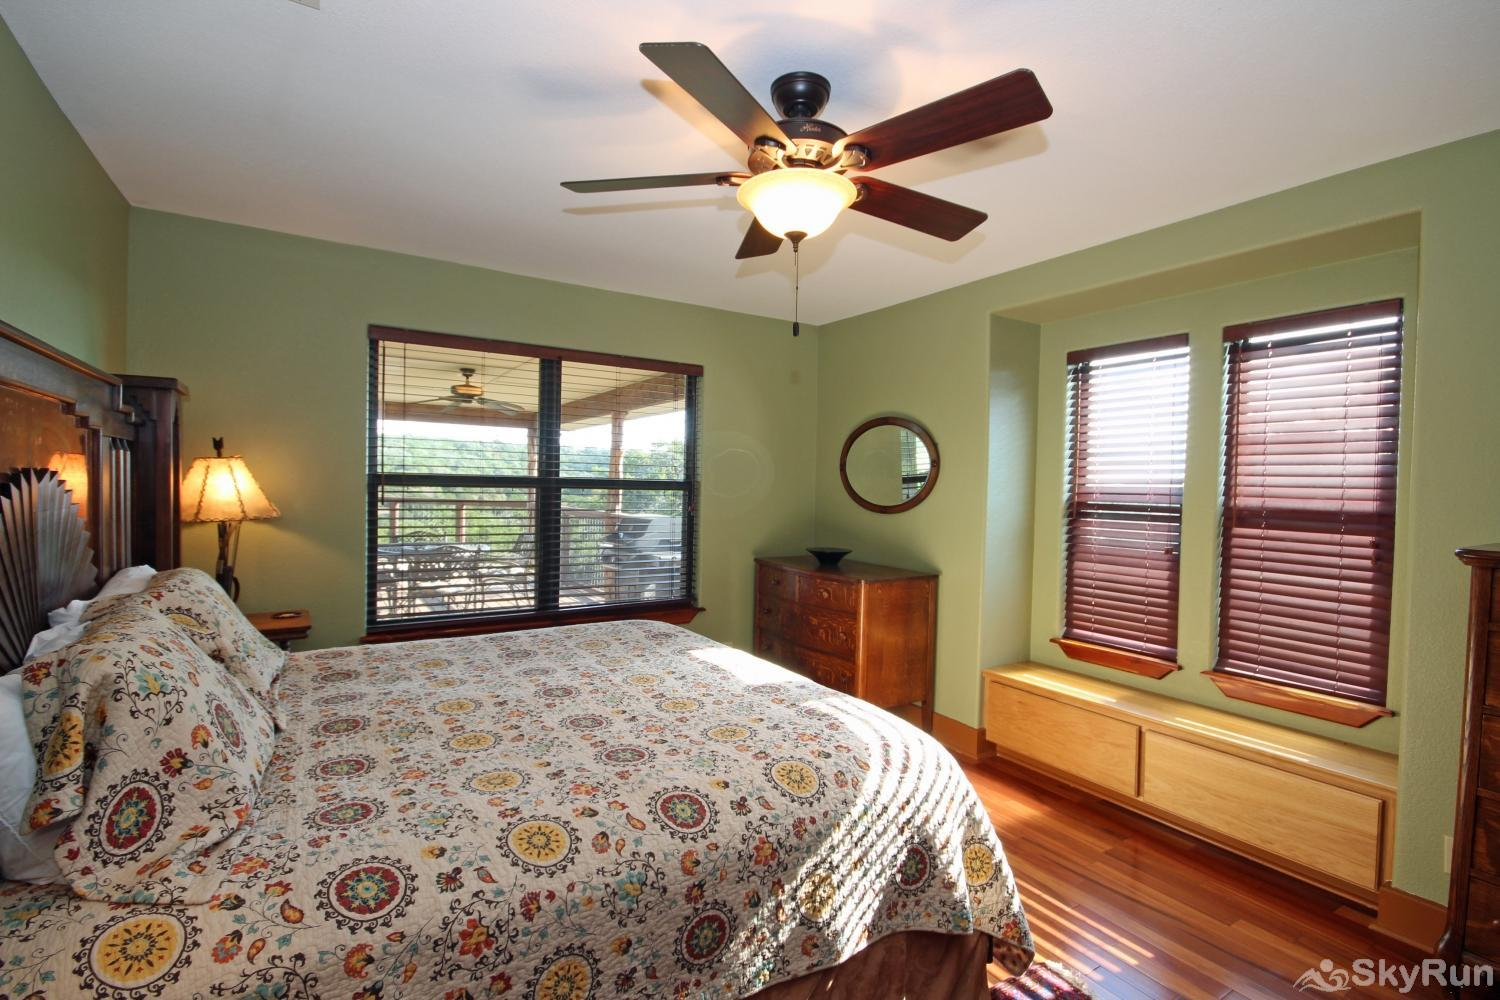 STAR HOUSE First bedroom with king bed and attached bath